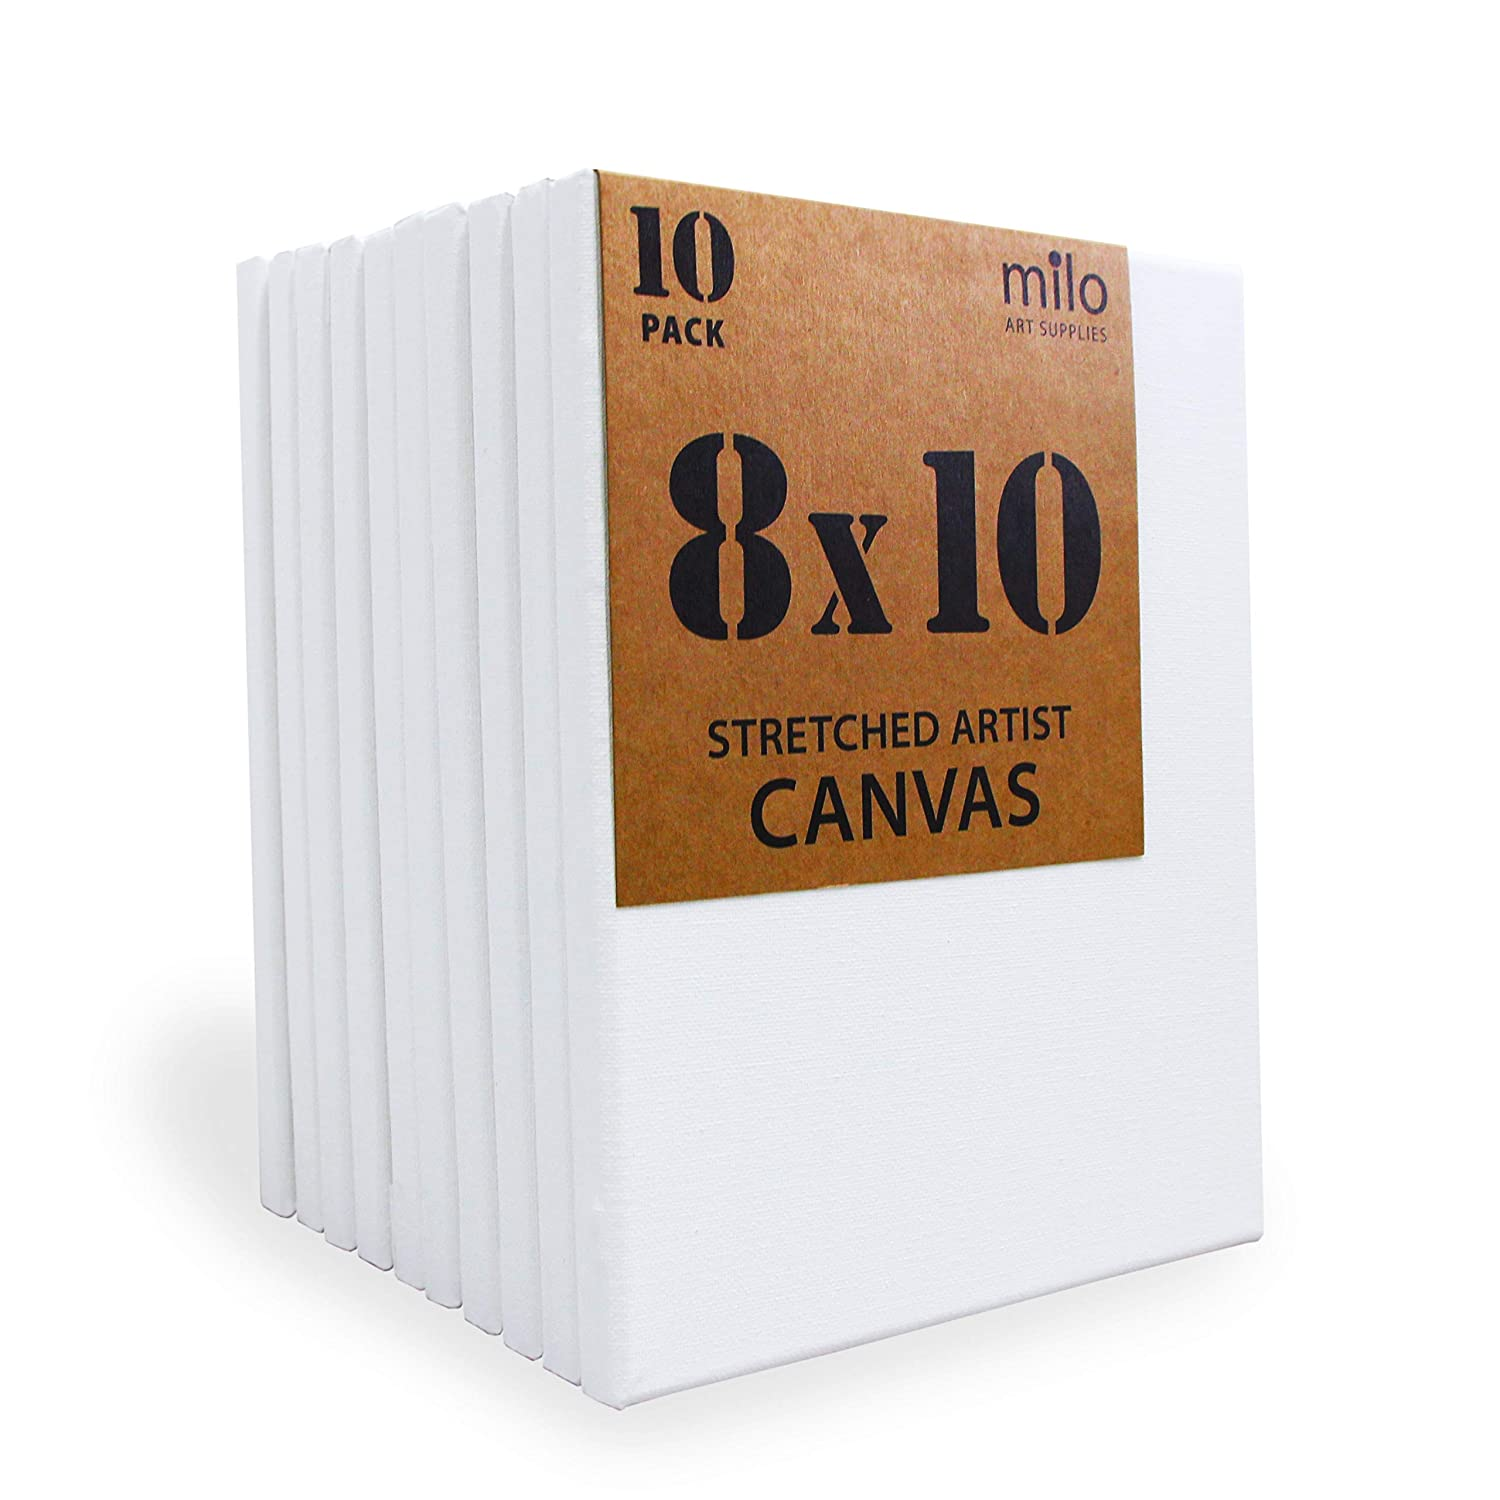 8 x 10 Pre Stretched Artist Canvas Value Pack of 10 Primed Cotton Canvas for Painting MILO 5//8 Profile Gallery Wrapped Back Stapled